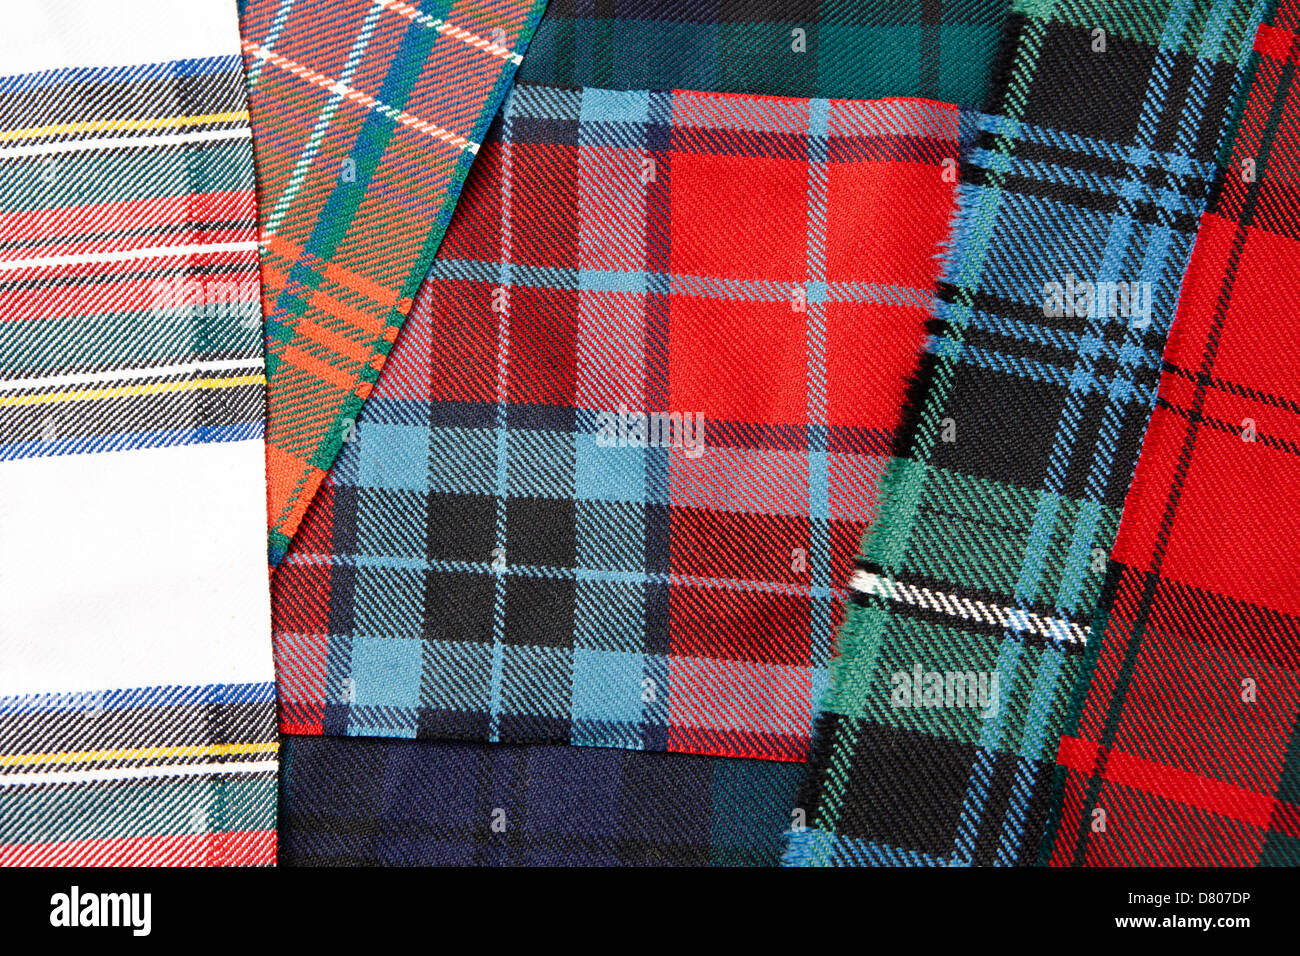 range of traditional scottish clan tartans - Stock Image